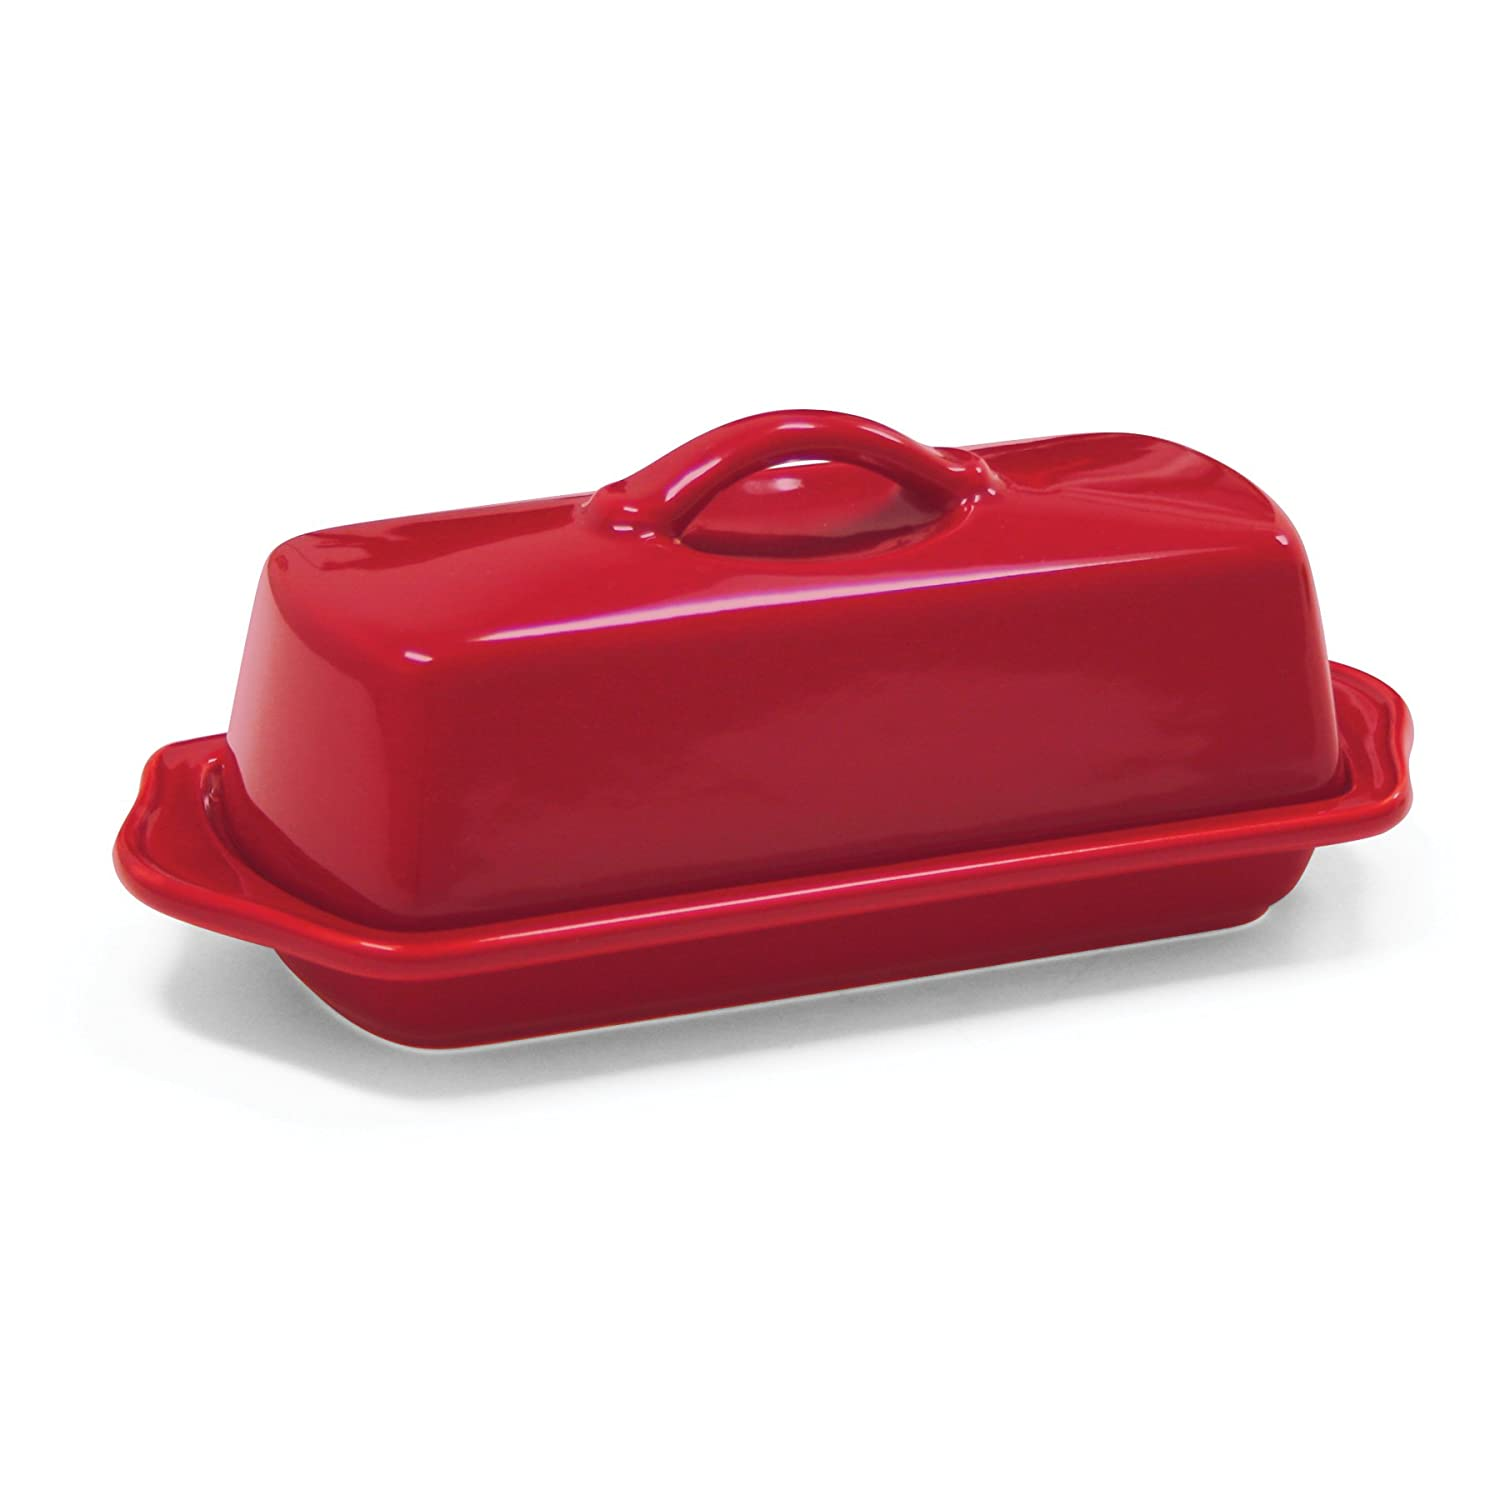 Chantal 93-TVBD-1 RR Large Butter Dish, True Red